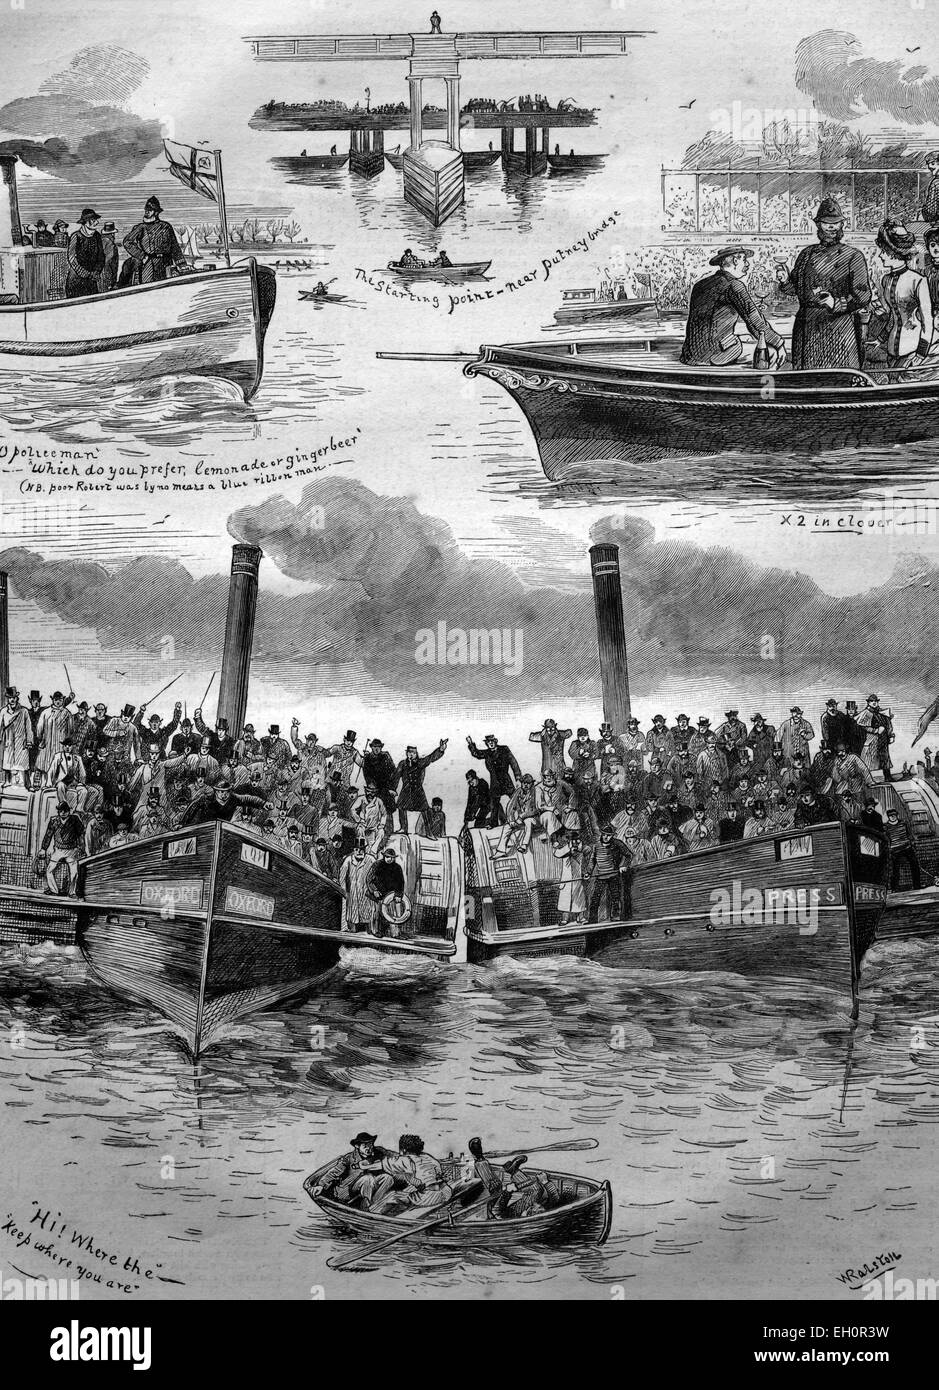 Oxford and Cambridge Boat Race, England, historical illustration, 1884 - Stock Image